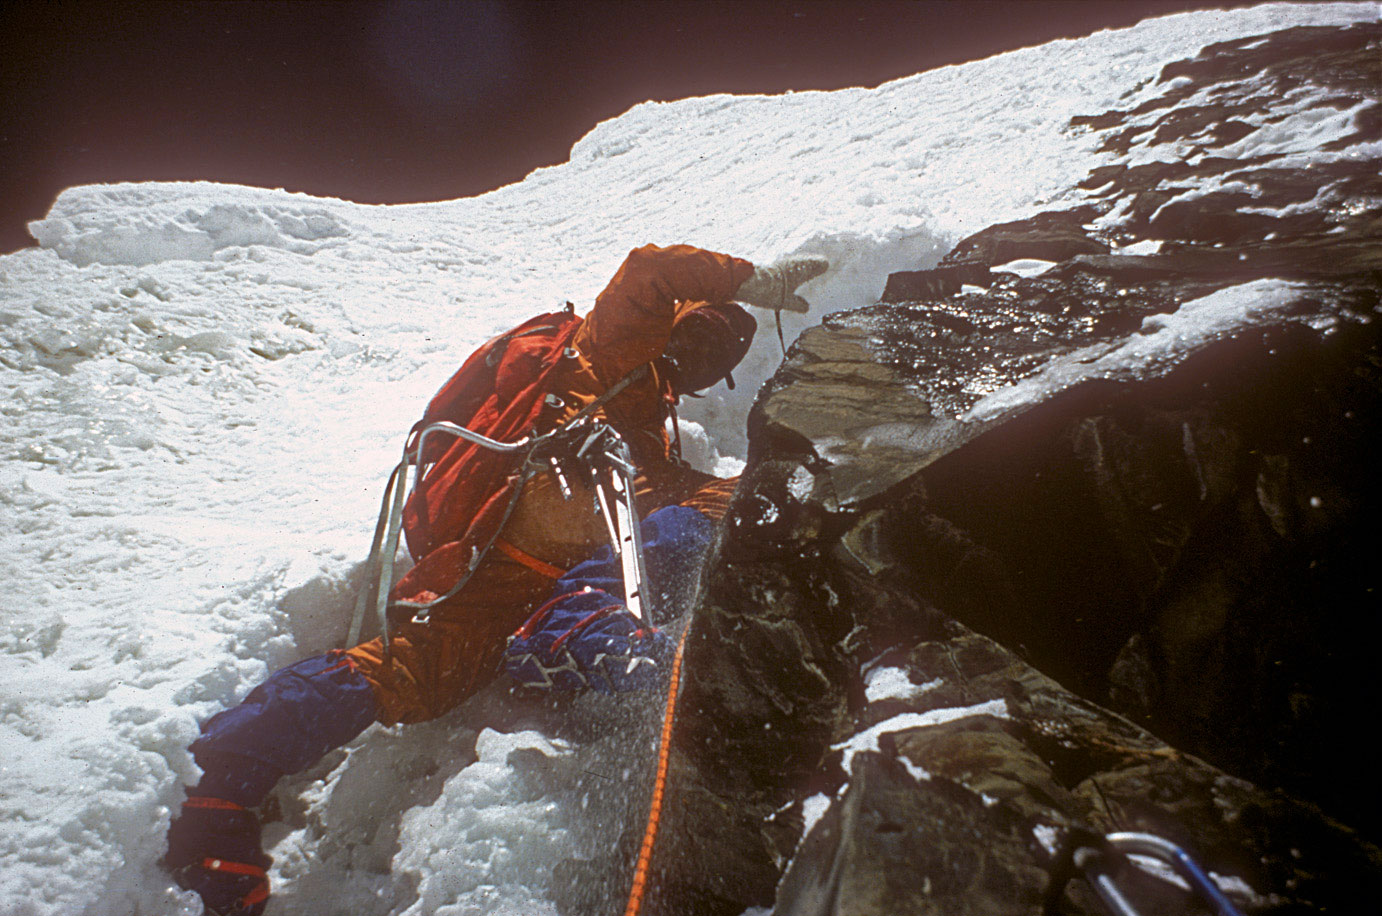 Chris Bonington leading on difficult stretch on Annapurna, 1970